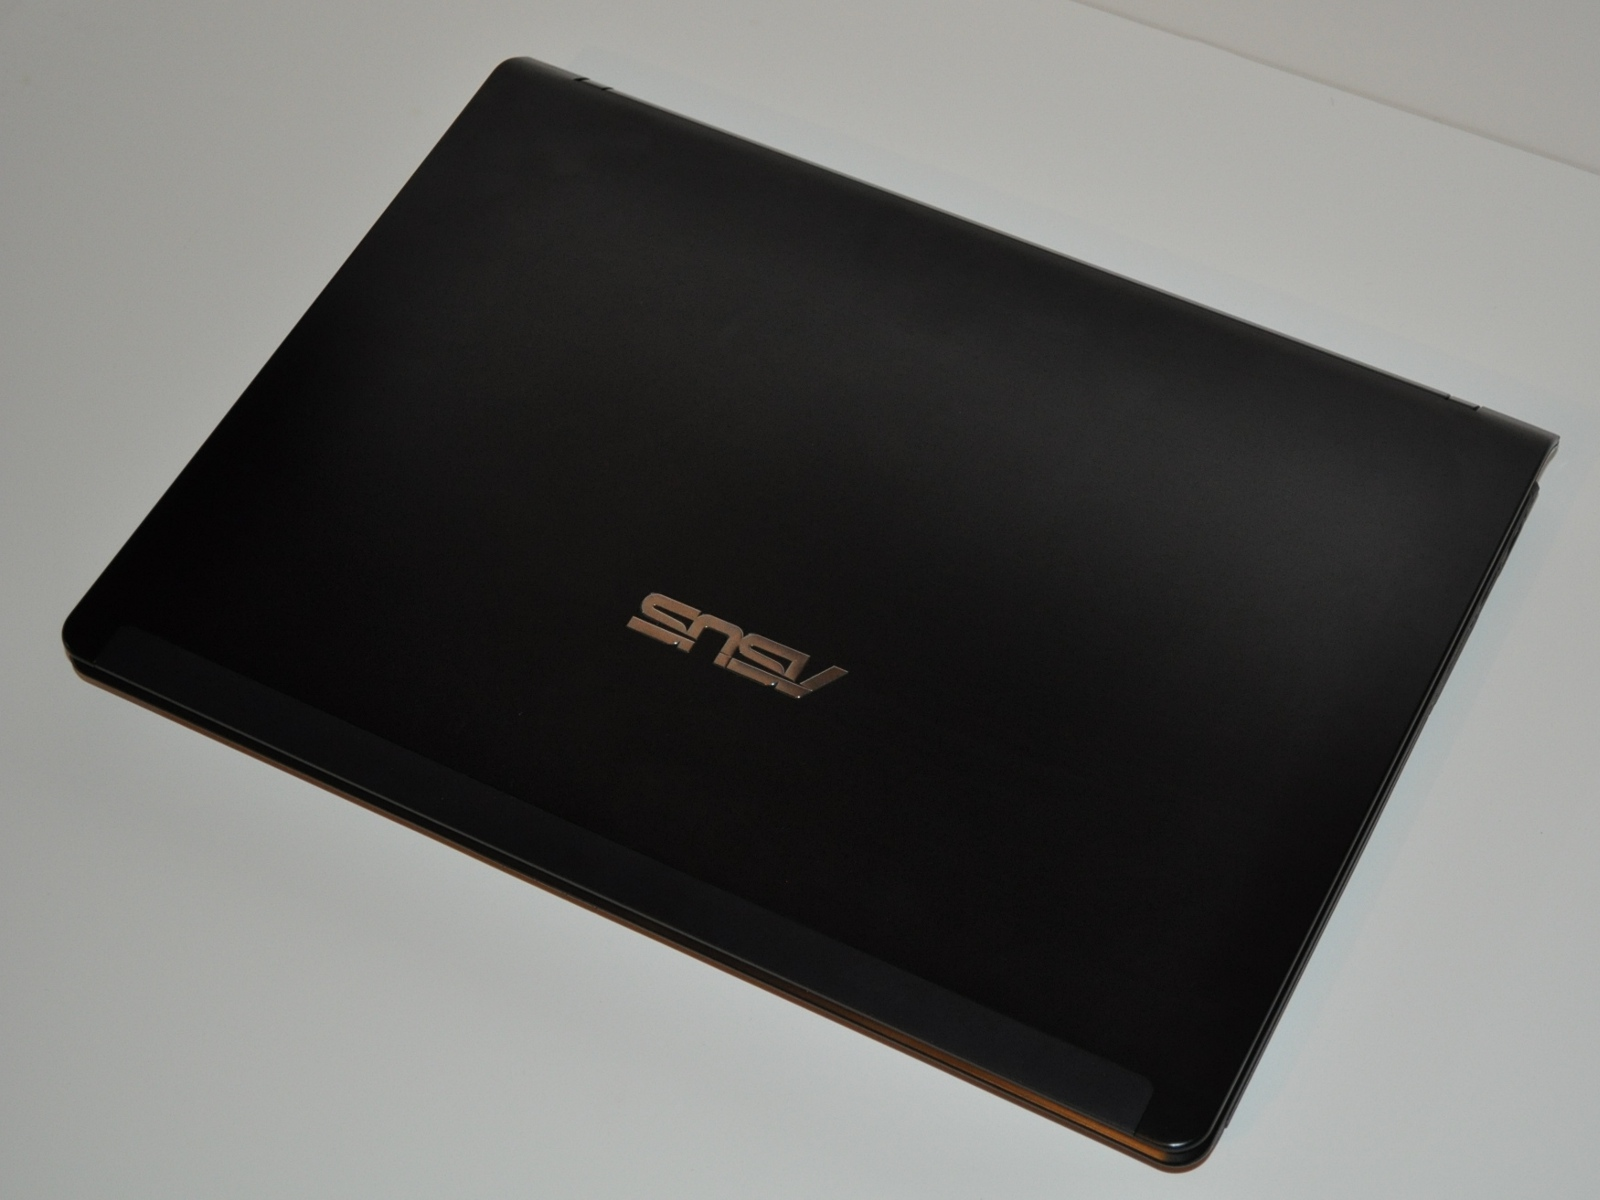 Asus UL80Jt Drivers Update